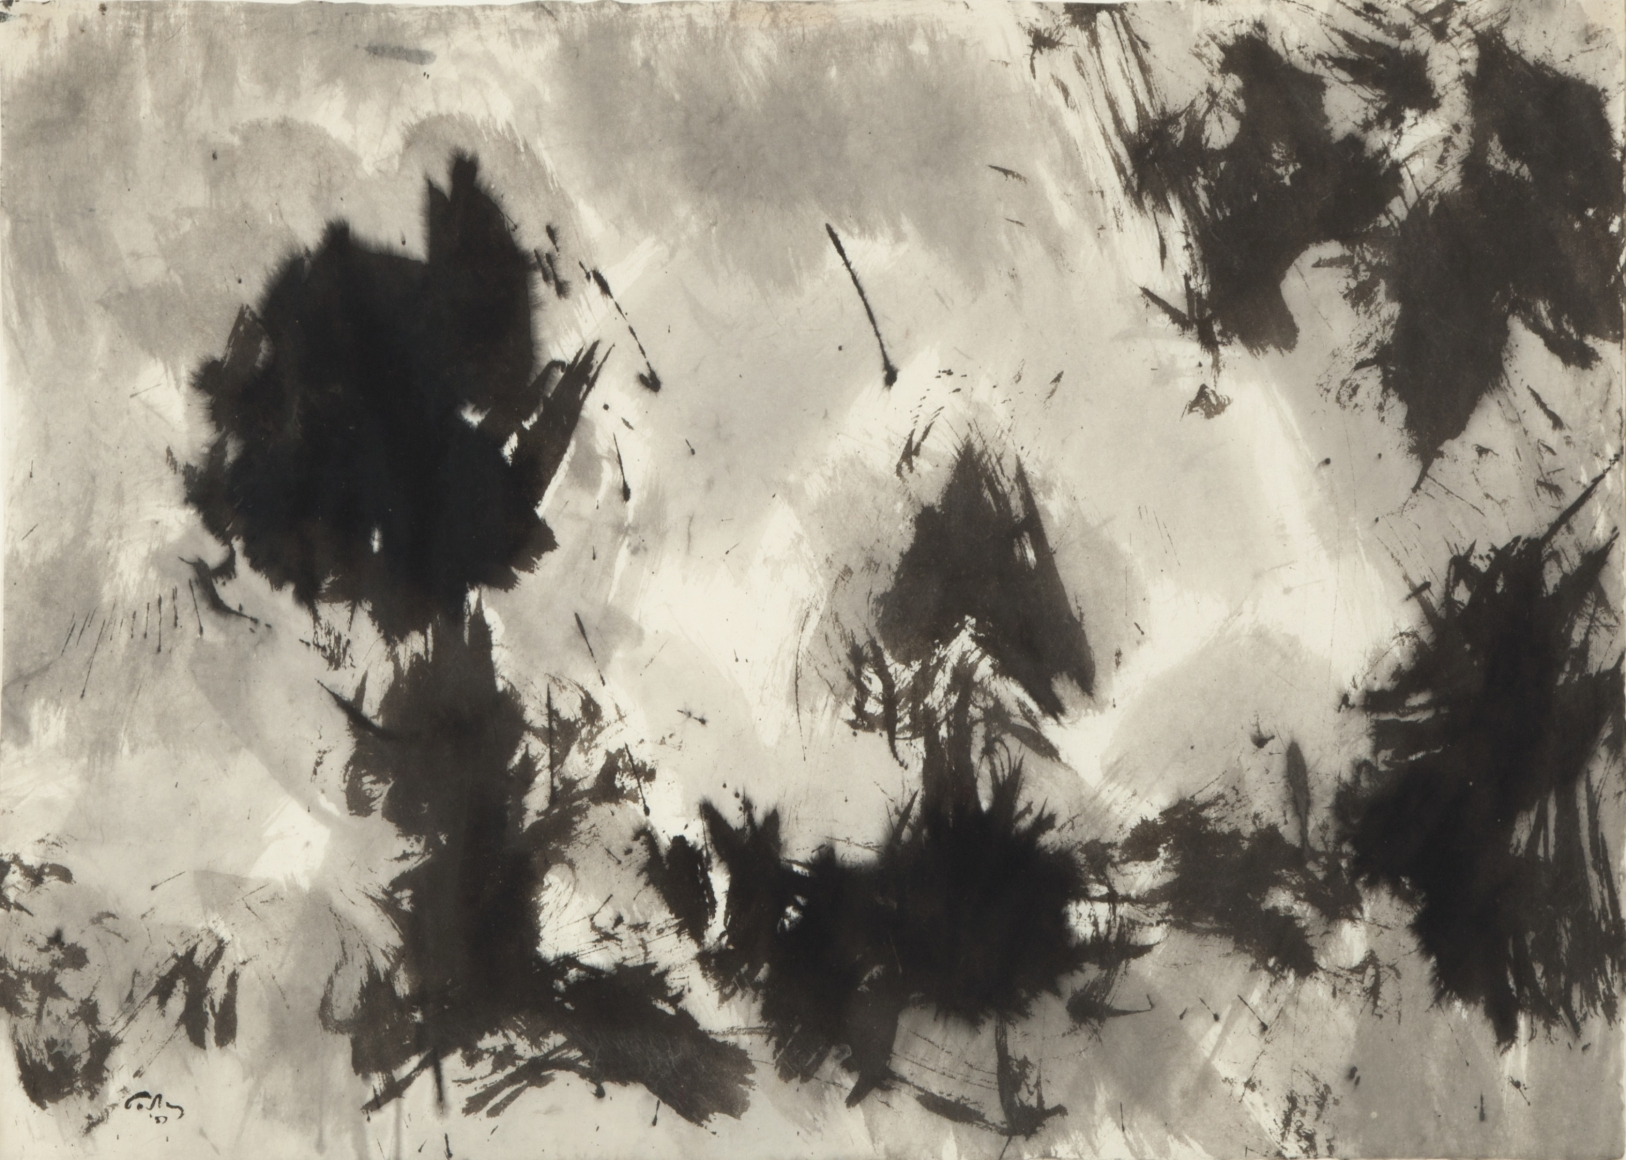 Mark Tobey (1890-1976), Untitled (Sumi), 1957, Sumi on paper, 20 3/4 x 29 in. (52.7 x 73.7 cm), Signed and dated lower left: Tobey '57